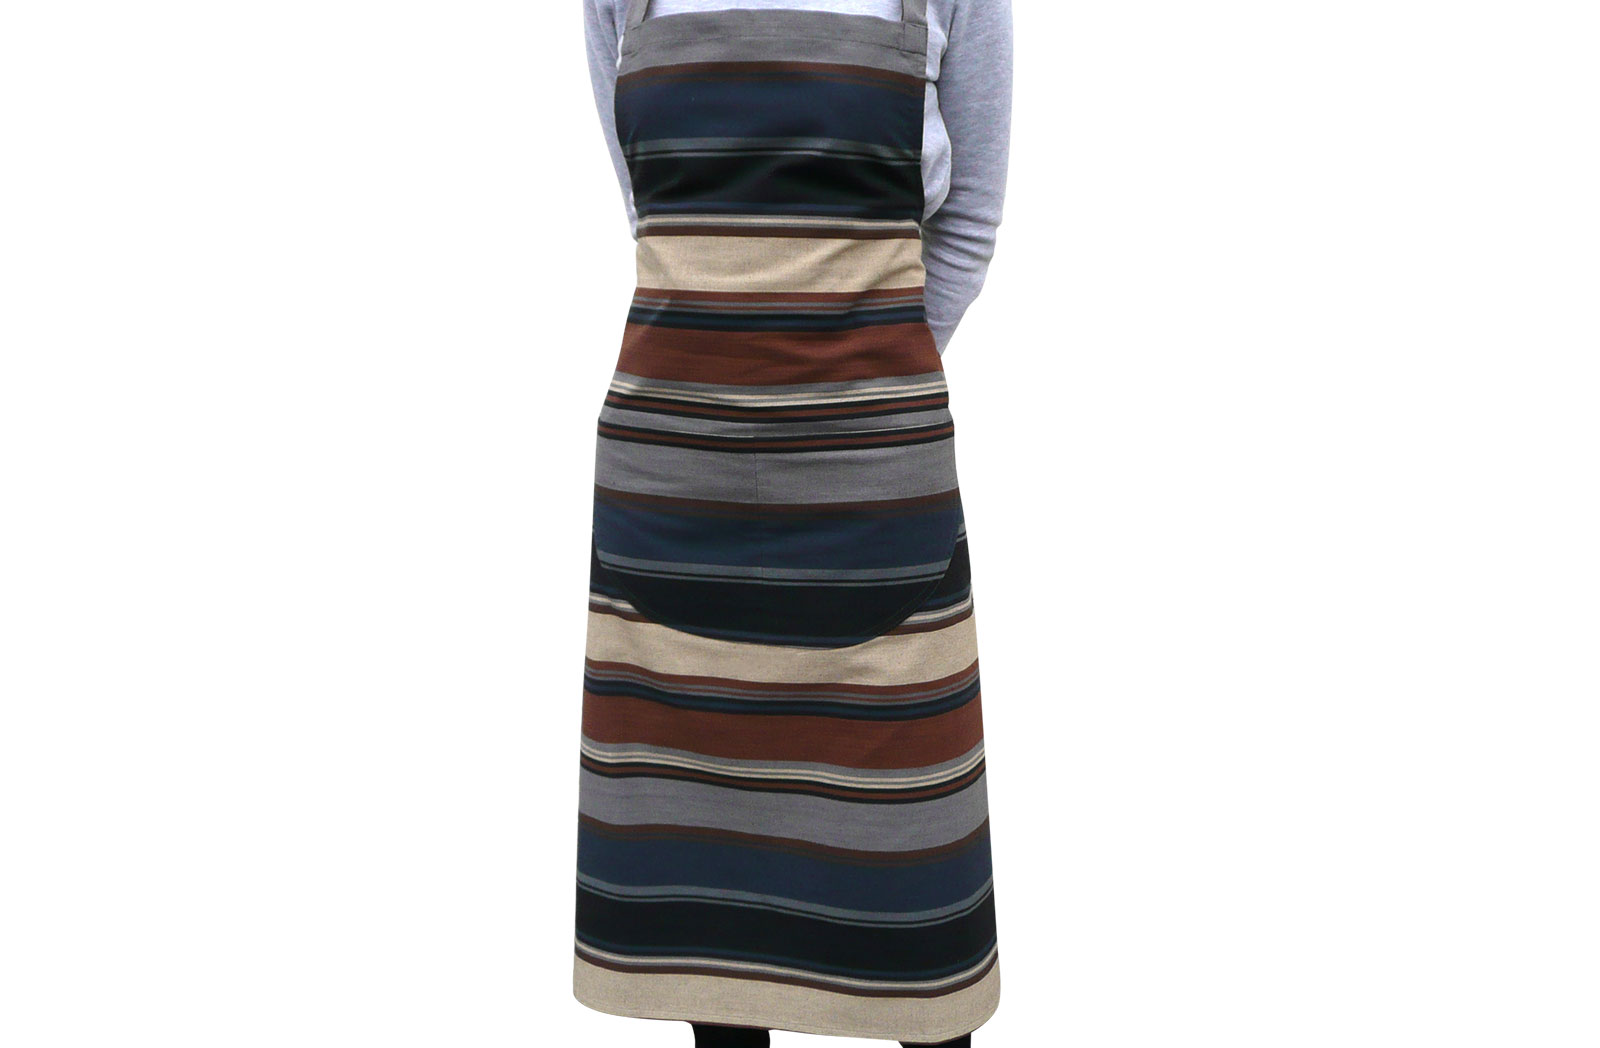 Grey Striped Aprons - Grey,  Dark Grey,  Dark Brown  Stripes